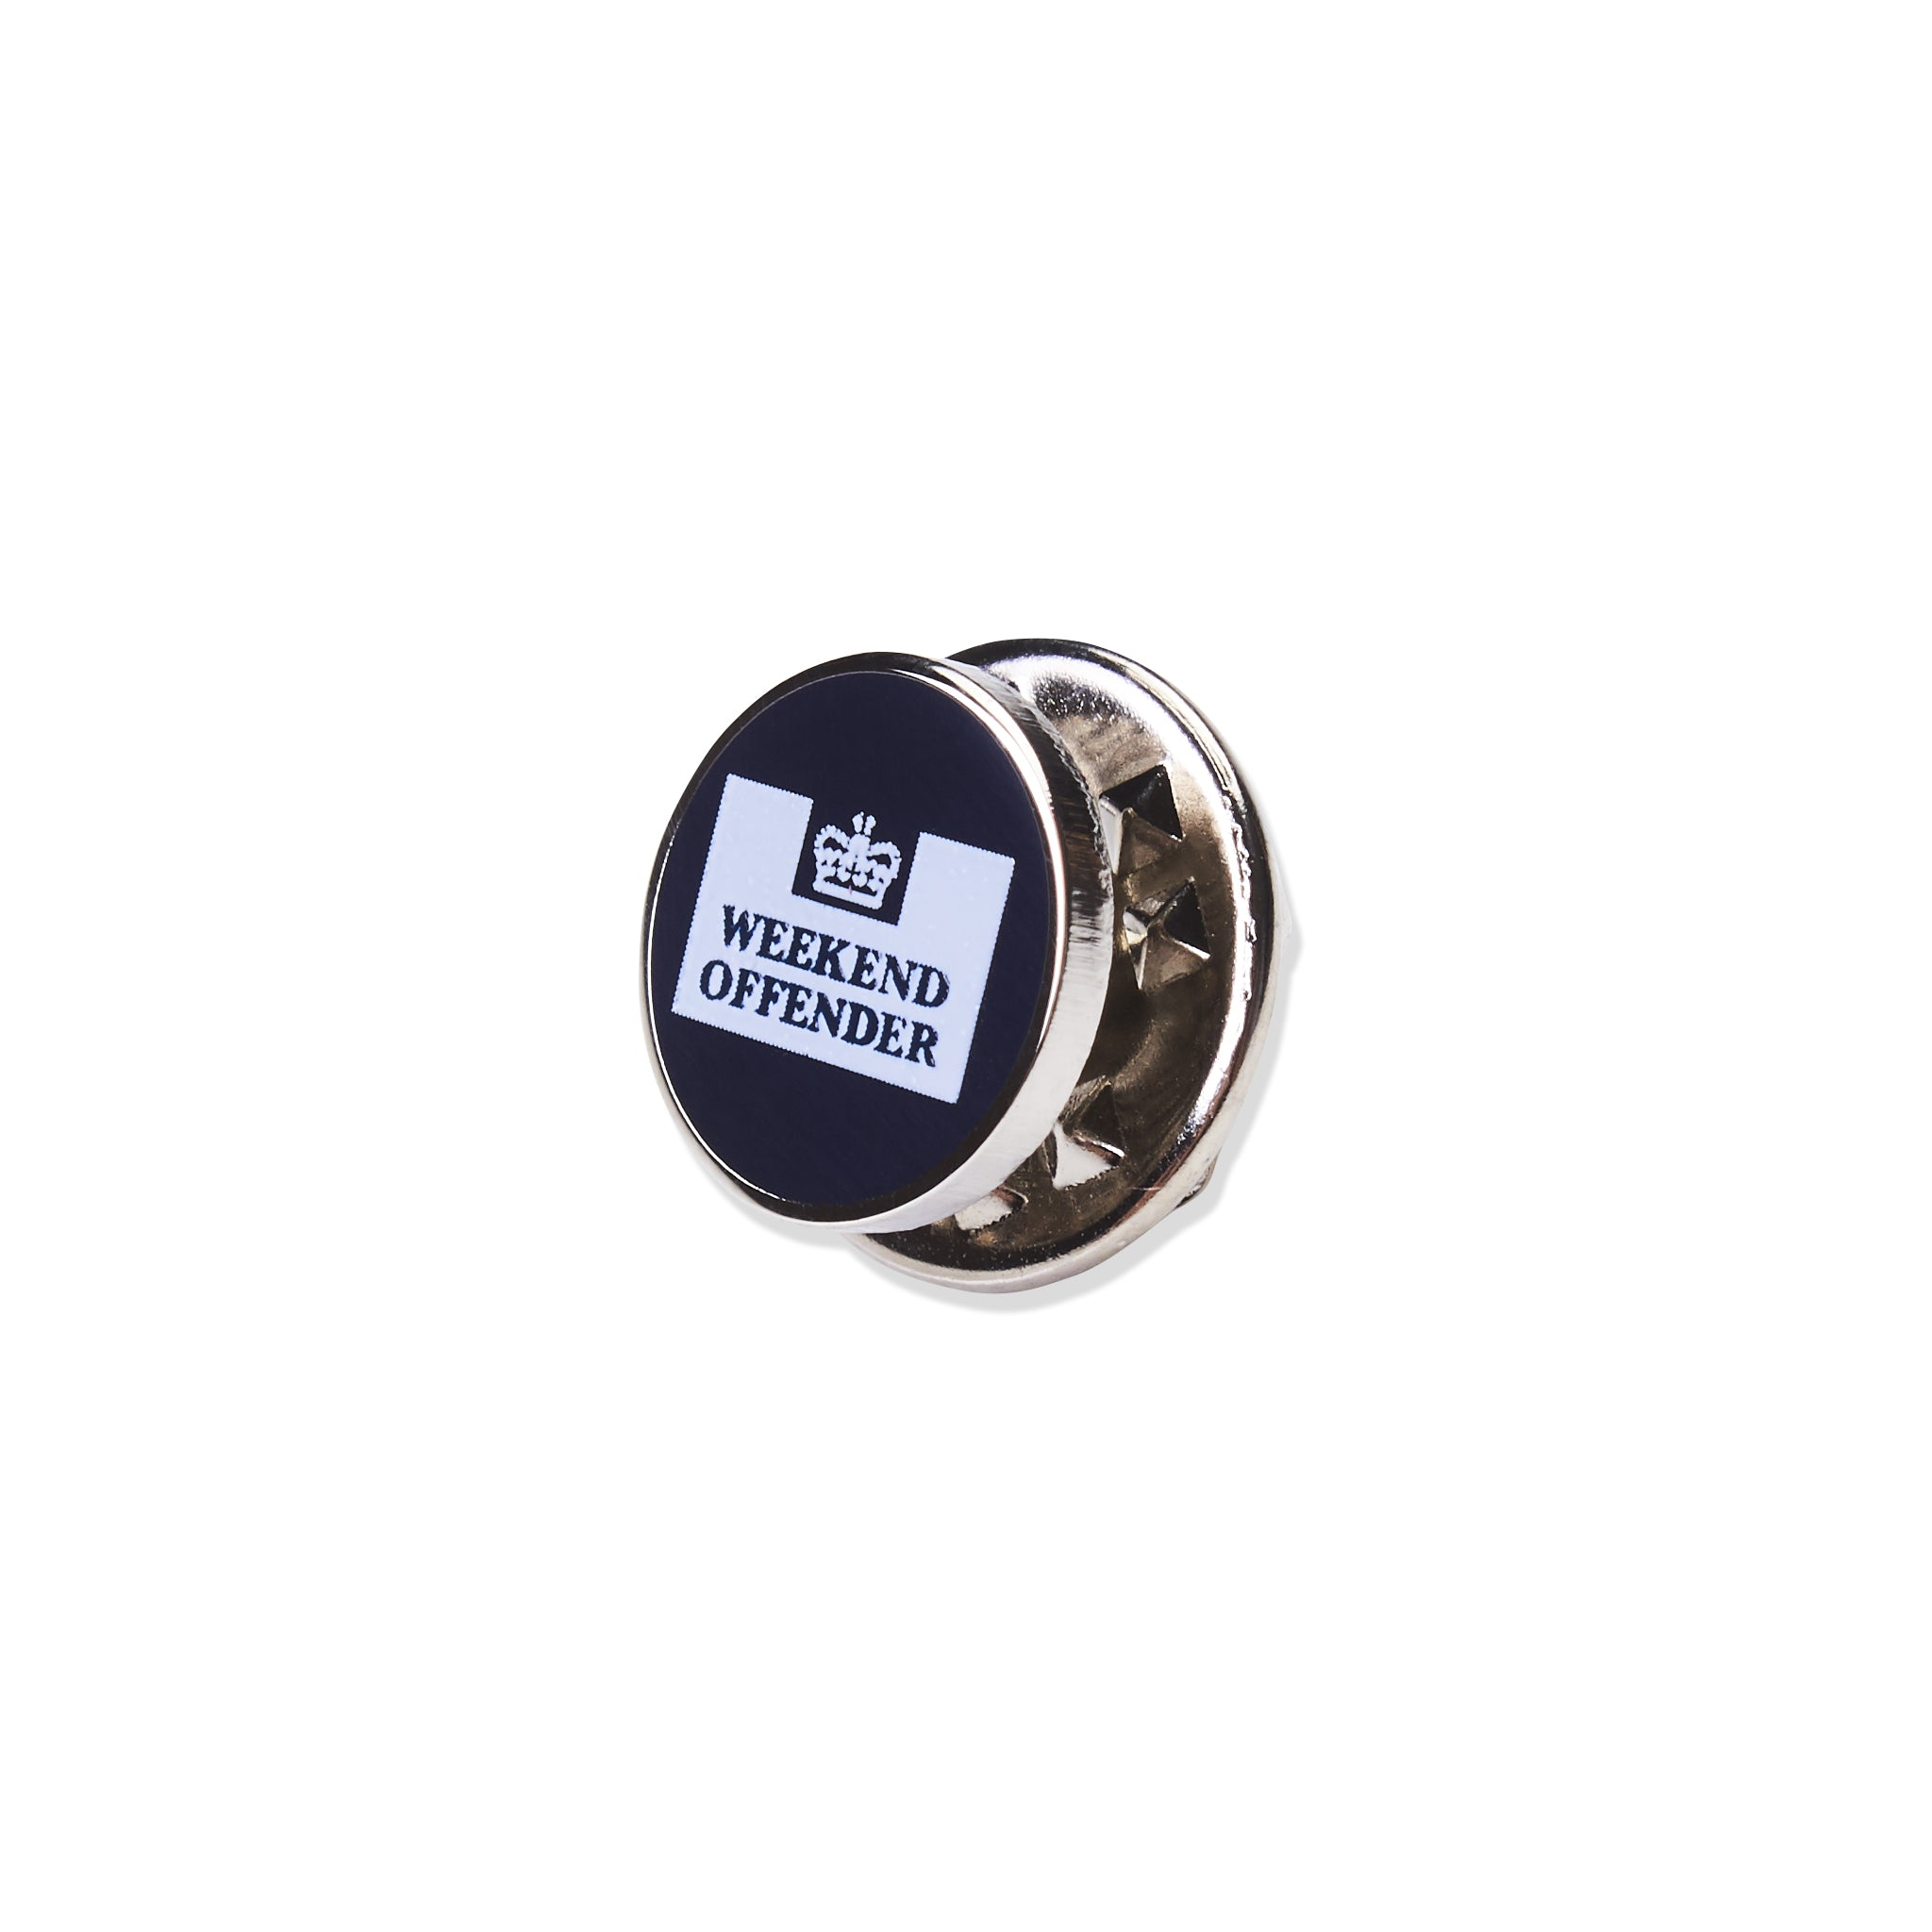 Weekend Offender Pin Badge